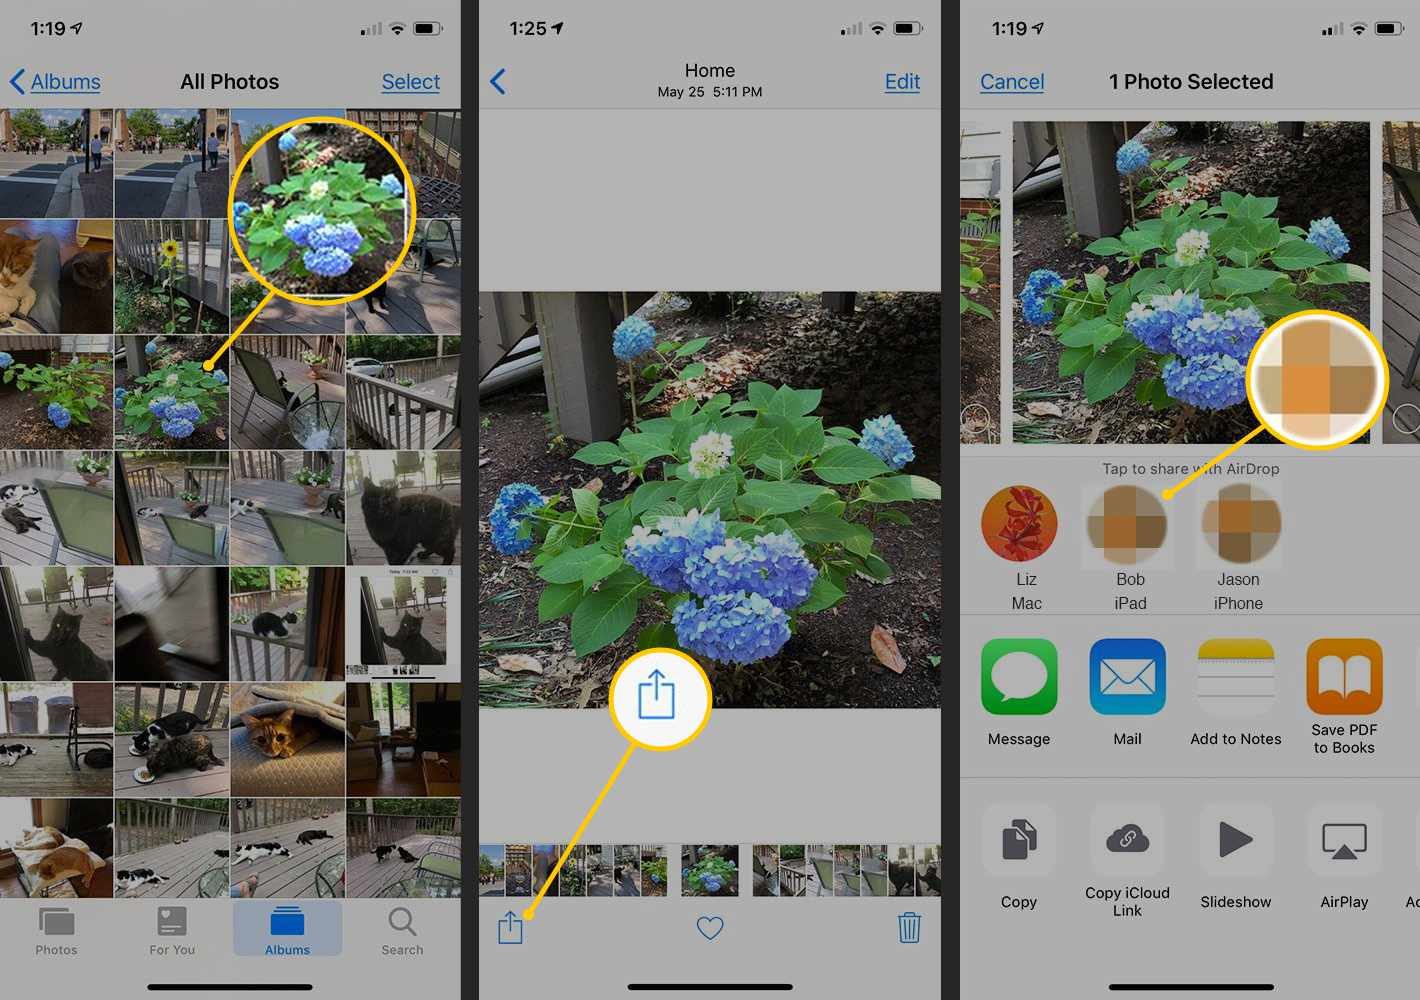 Image selection, Share button, AirDrop icons